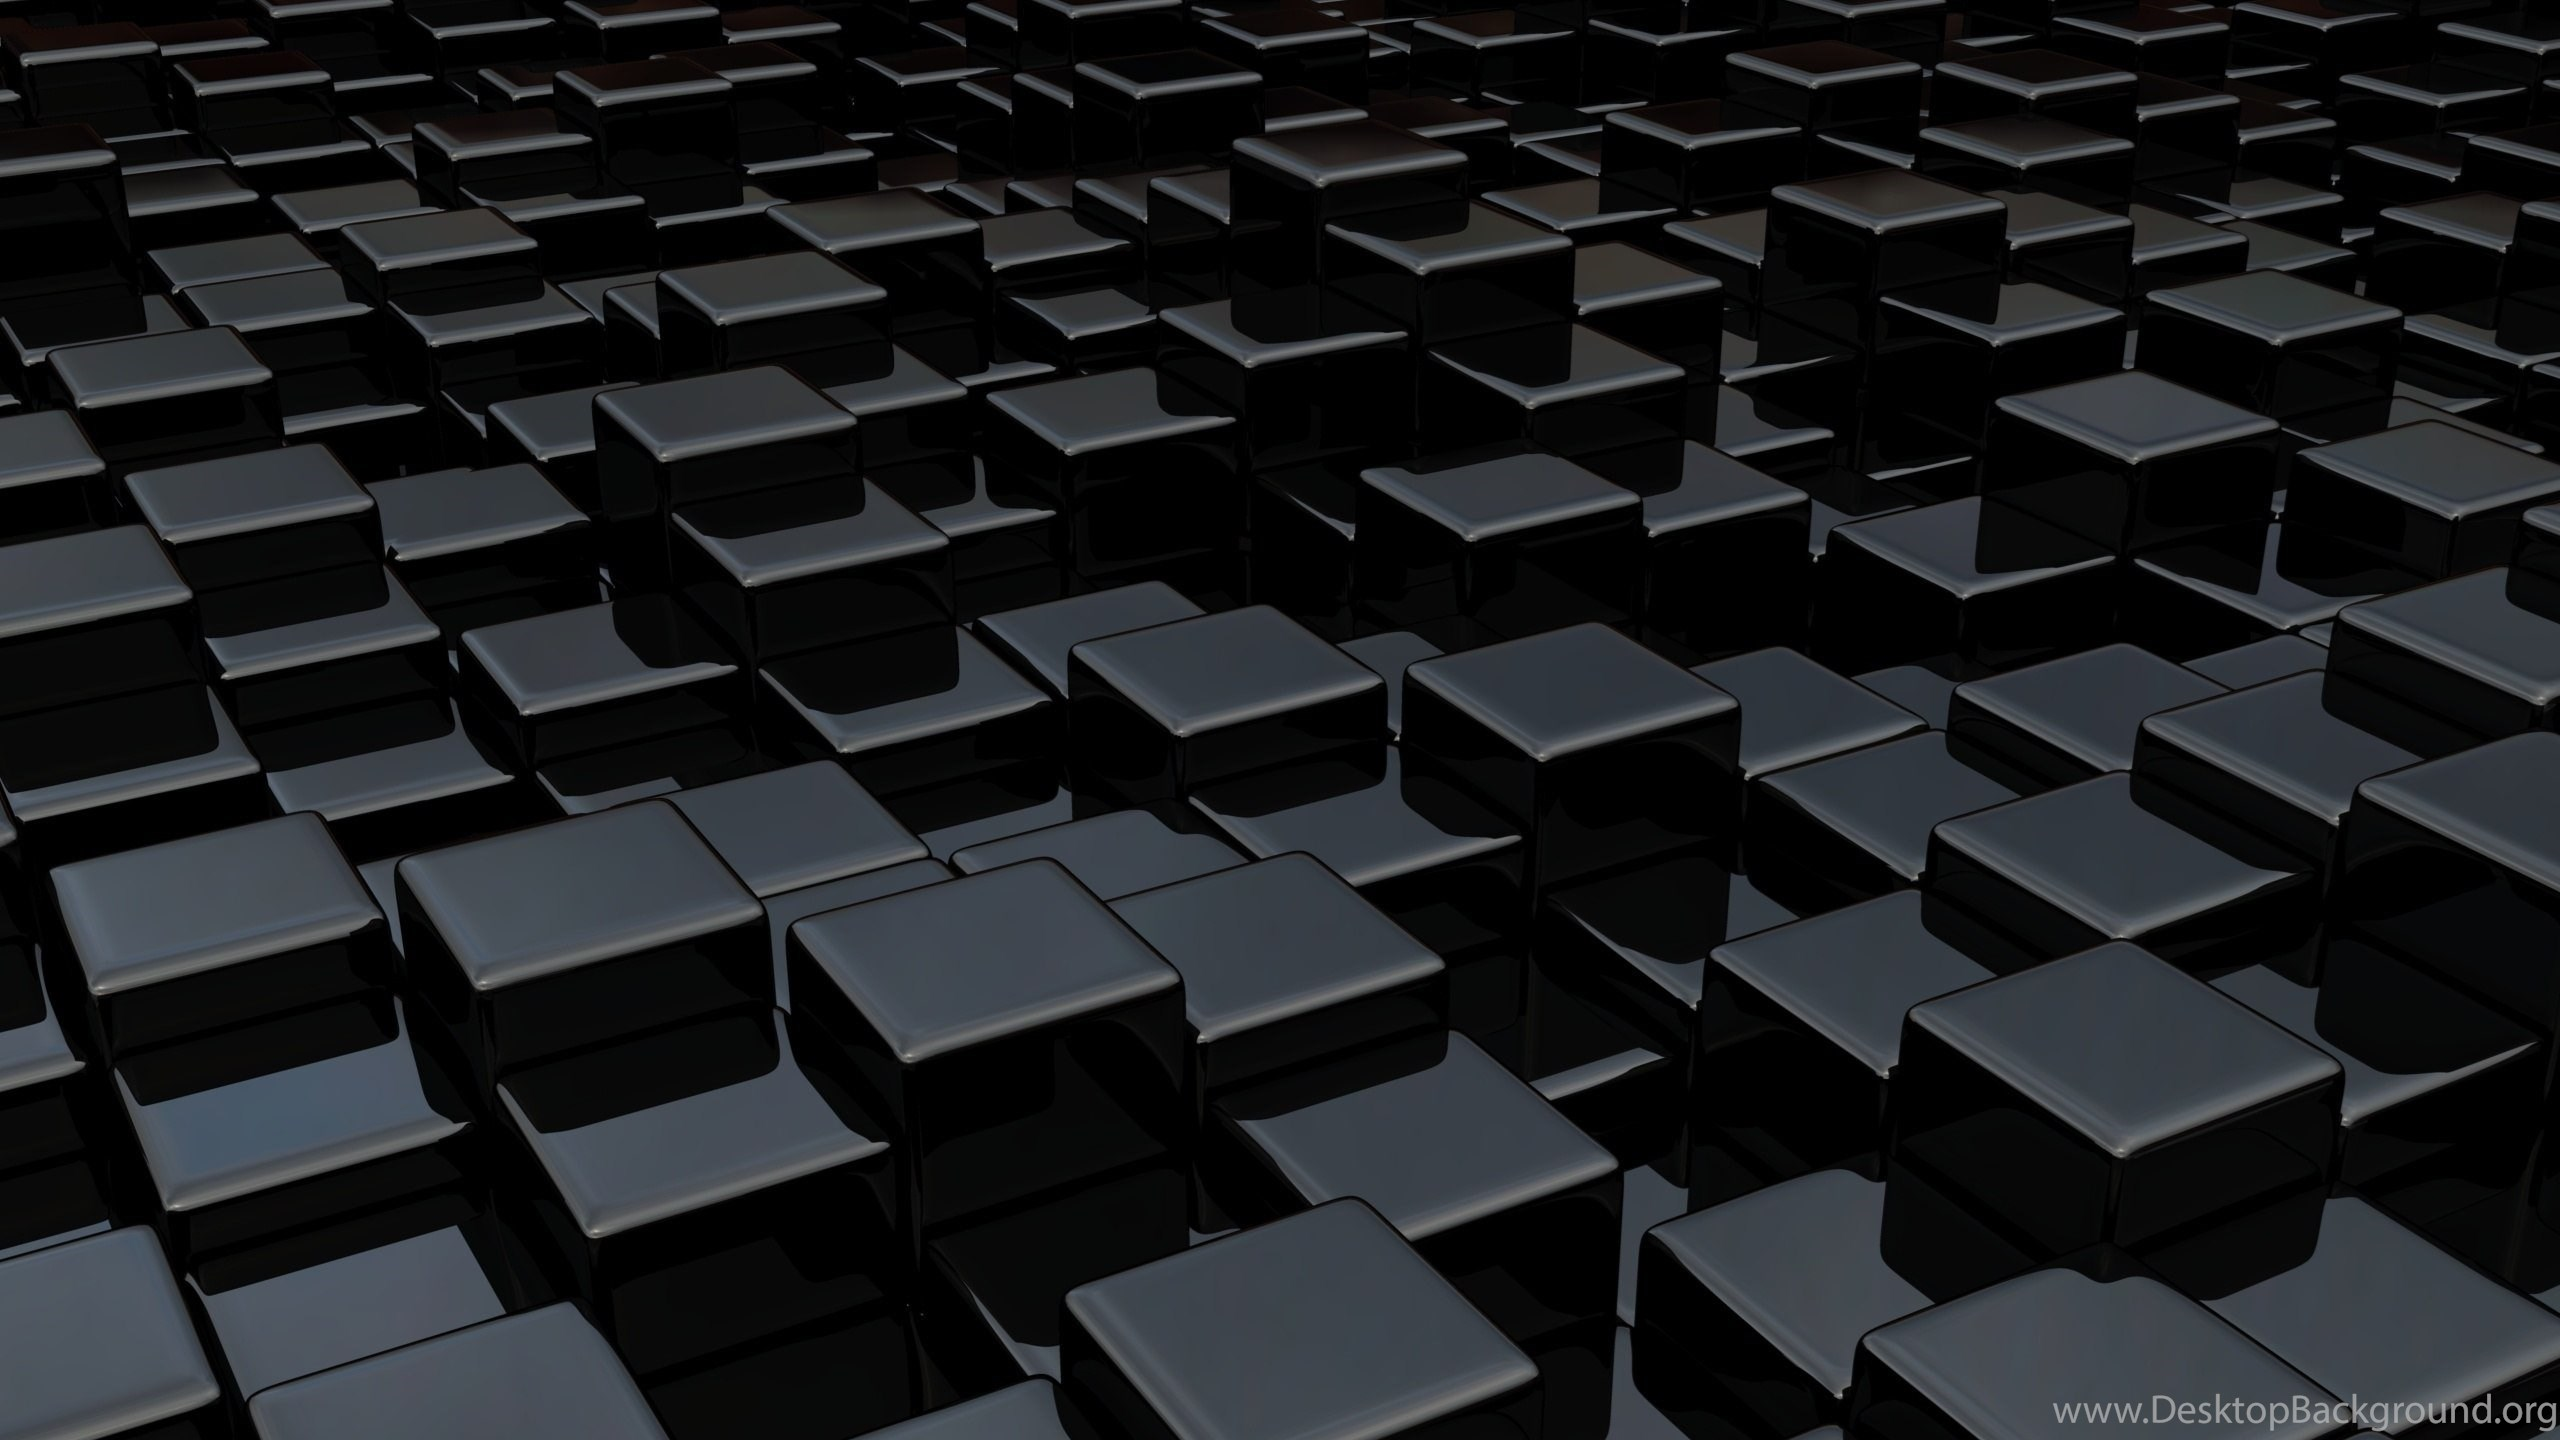 Black Cube World Wallpapers In 2560x1600 Screen Resolution